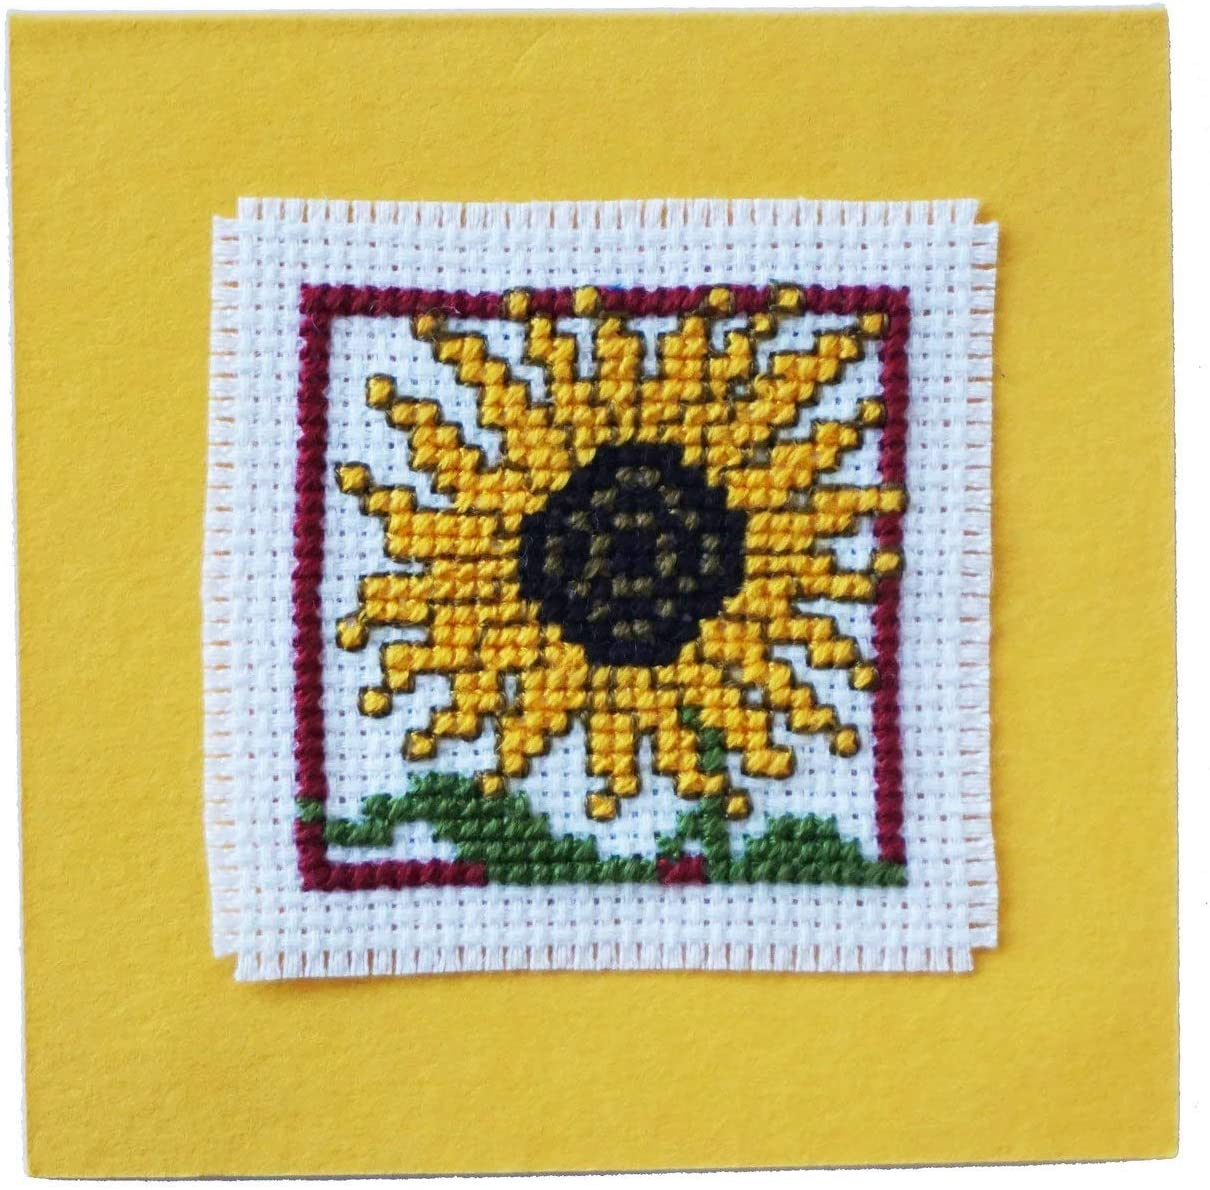 Sunflower Counted Cross Stitch Gift Card Kit by Textile Heritage Craft Kit